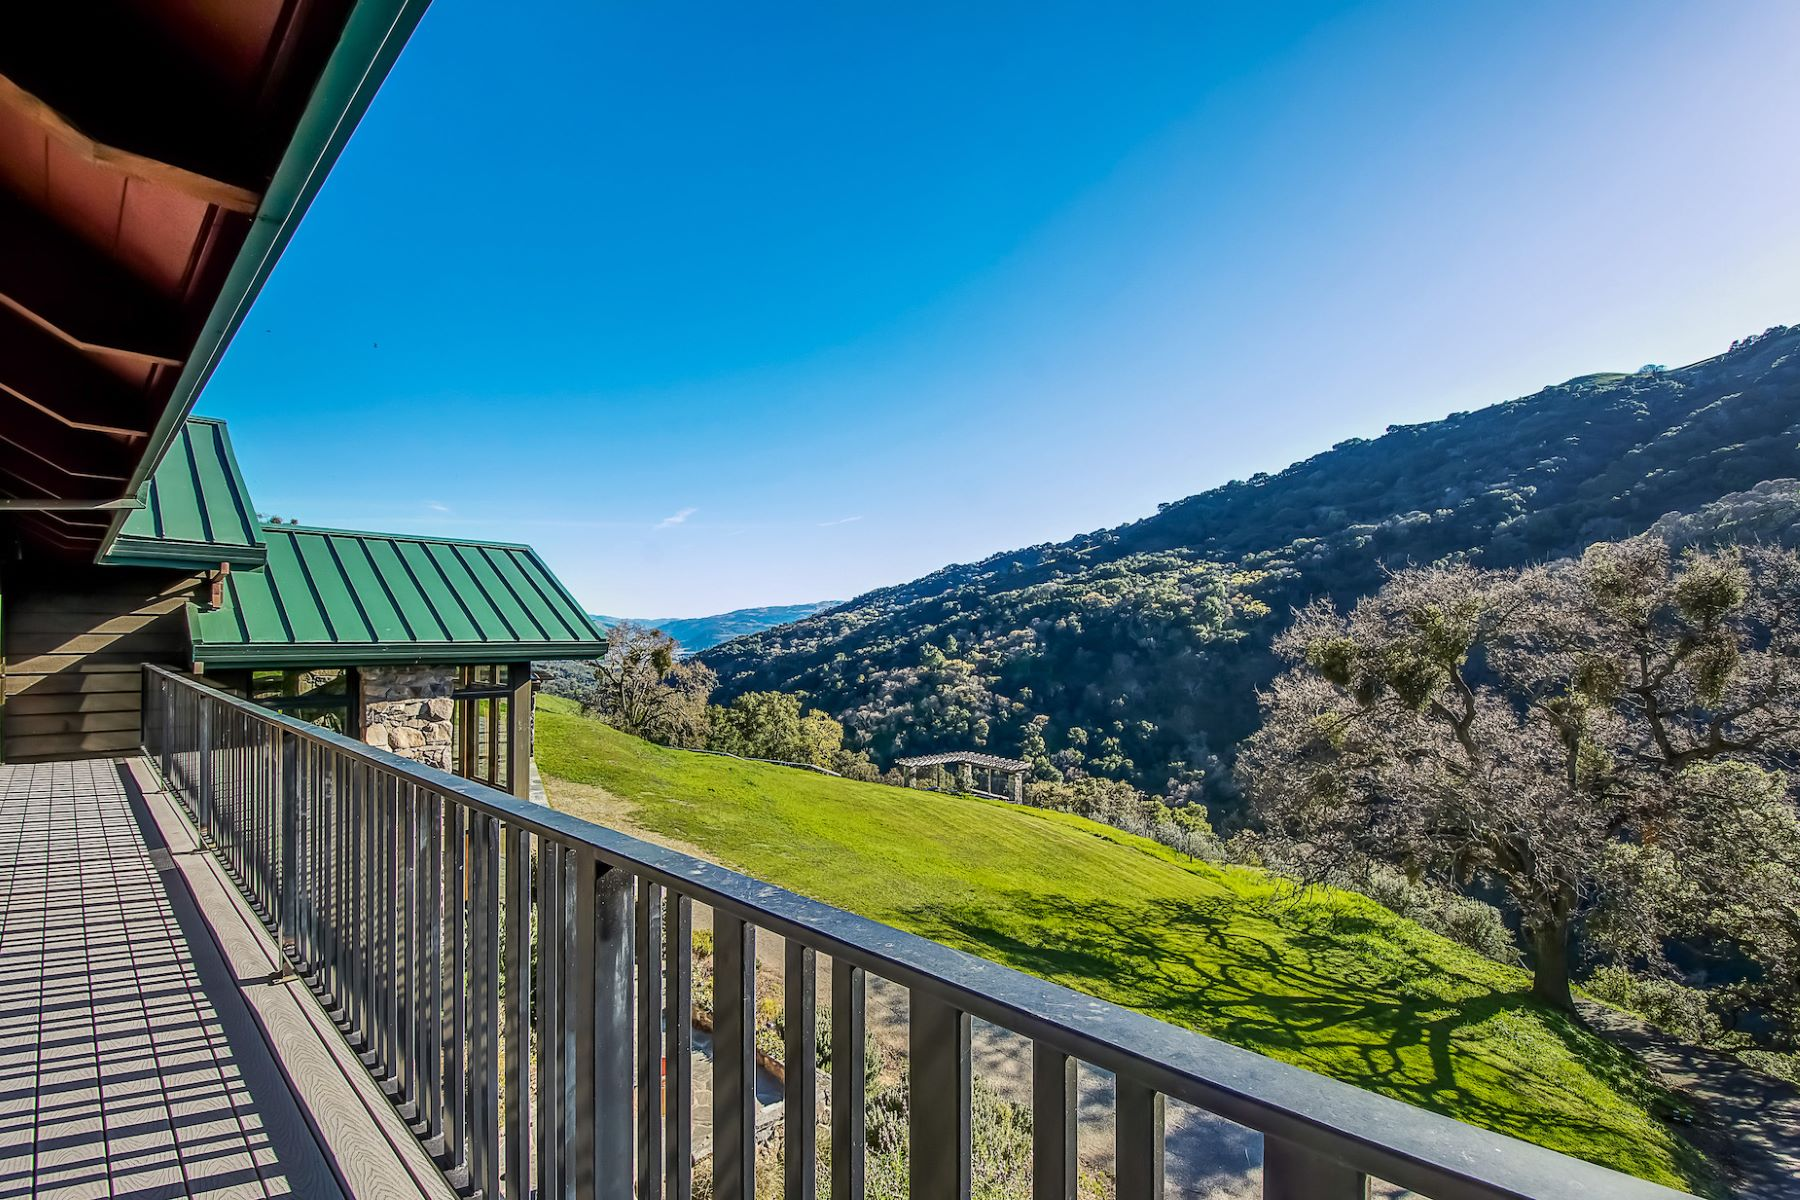 Additional photo for property listing at 1415 Kilkare Road, Sunol 1415 Kilkare Road Sunol, California 94586 United States